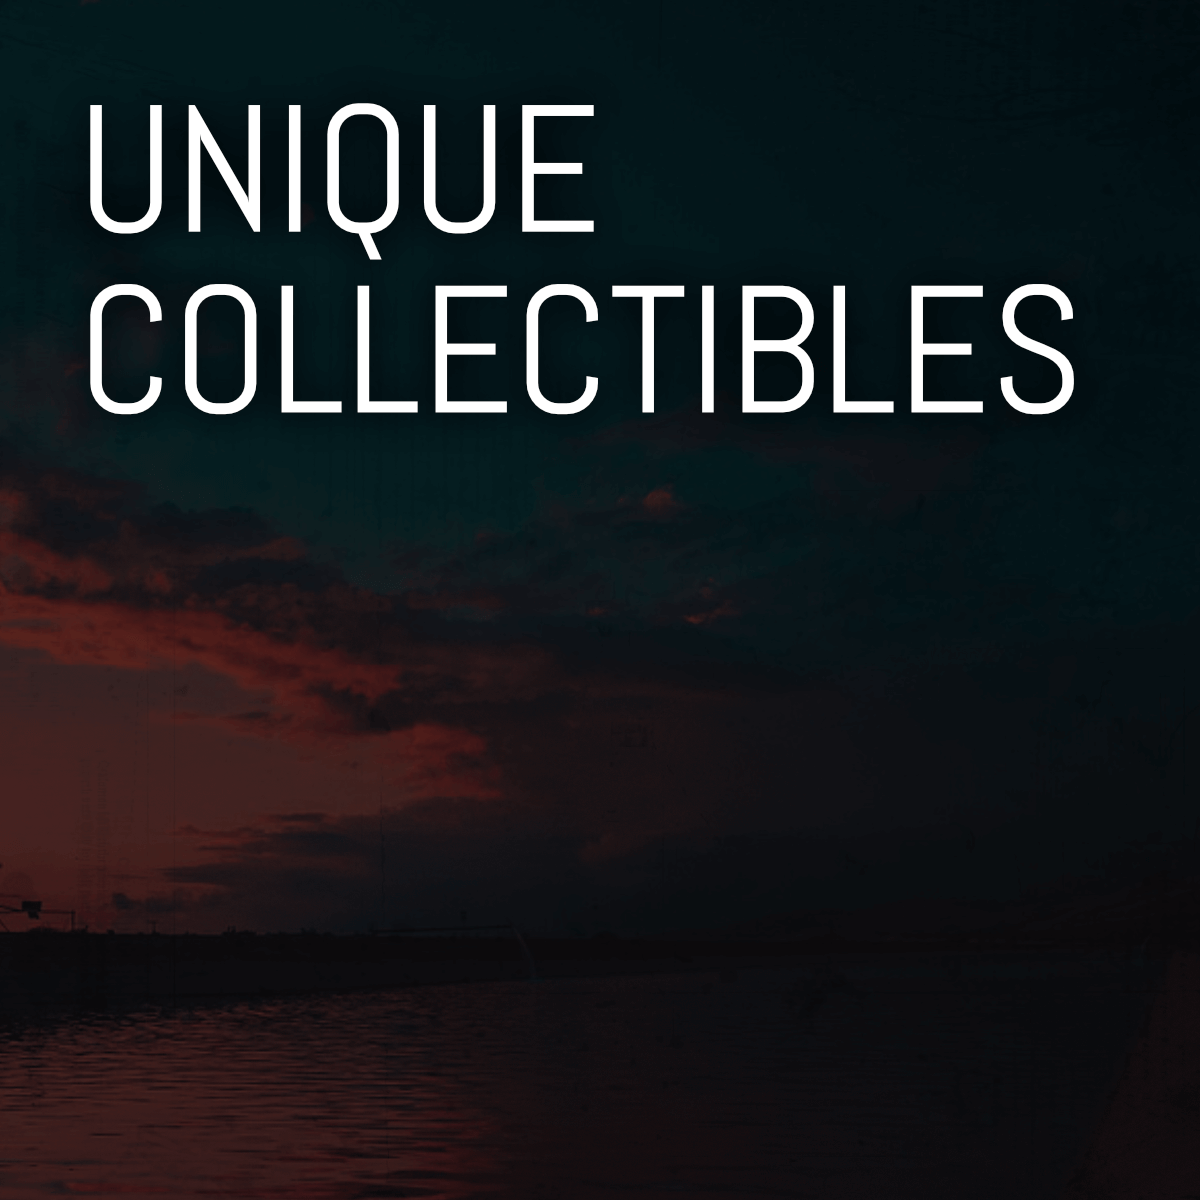 Receive collectible Dusk items delivered to your door each month. Every shipment will include a few collectible goodies and a raffle ticket for the monthly live stream.